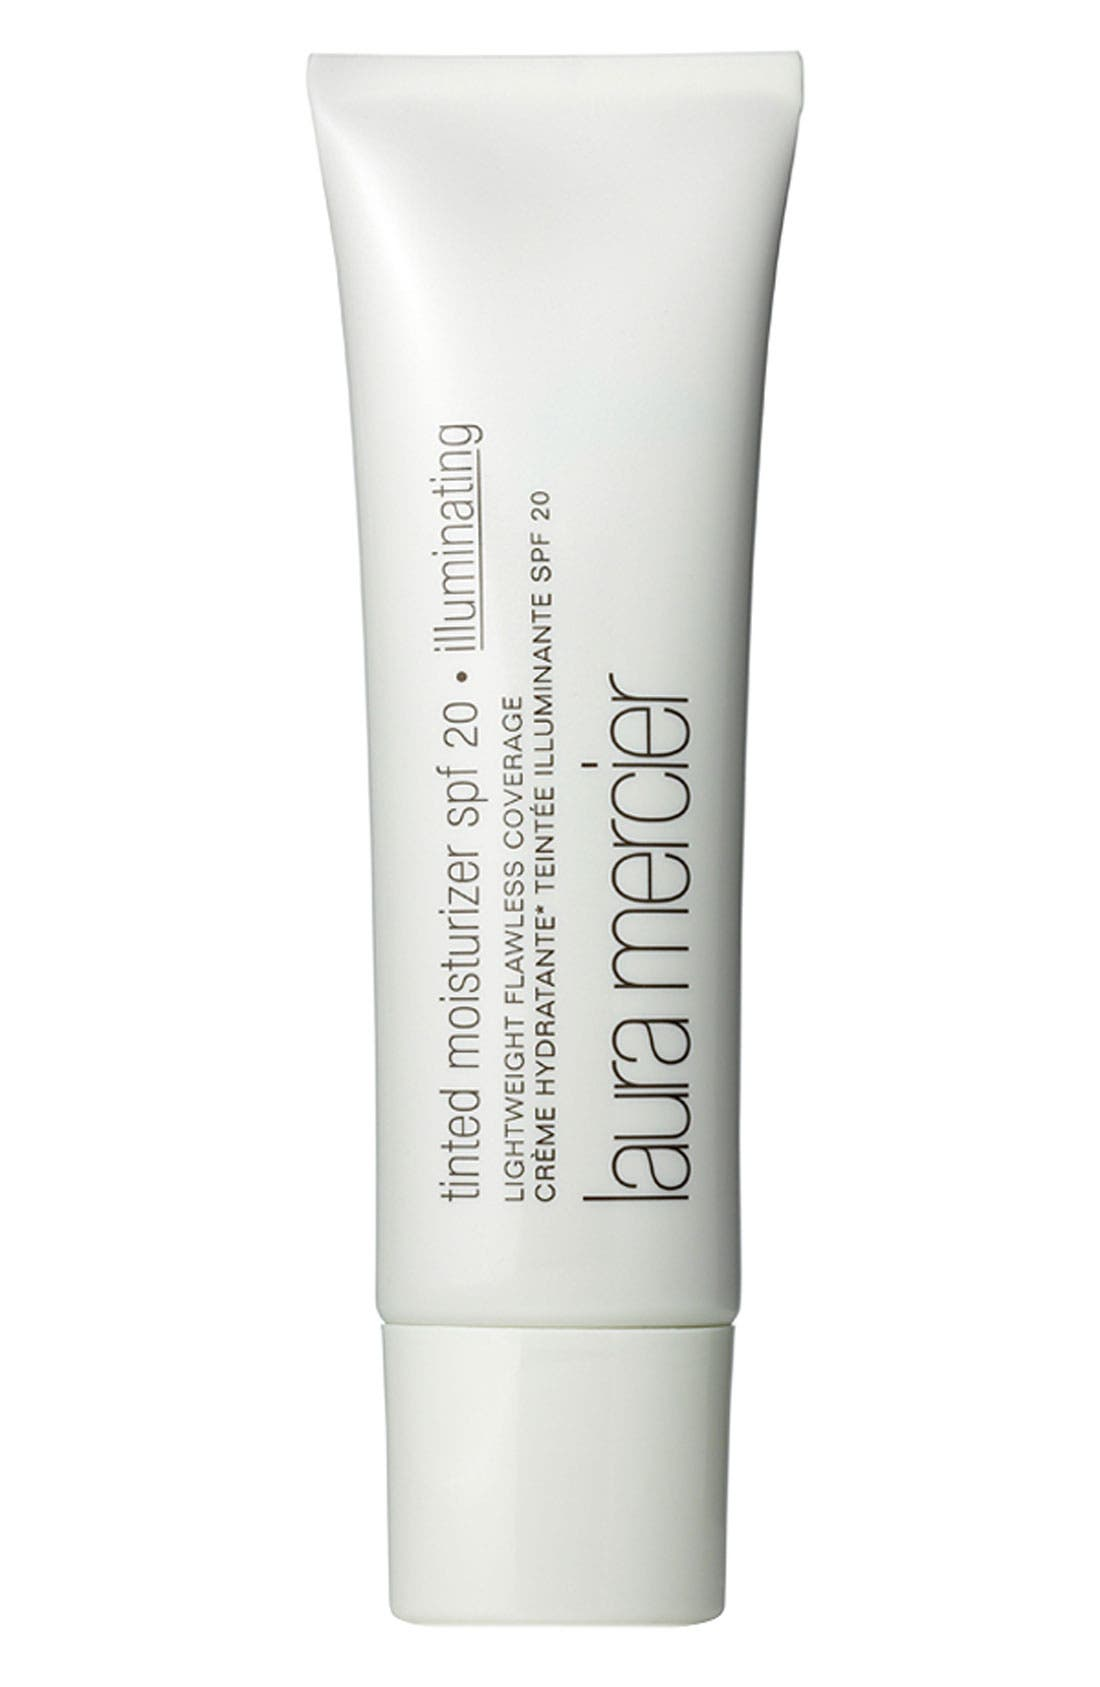 Laura Mercier Illuminating Tinted Moisturizer SPF 20